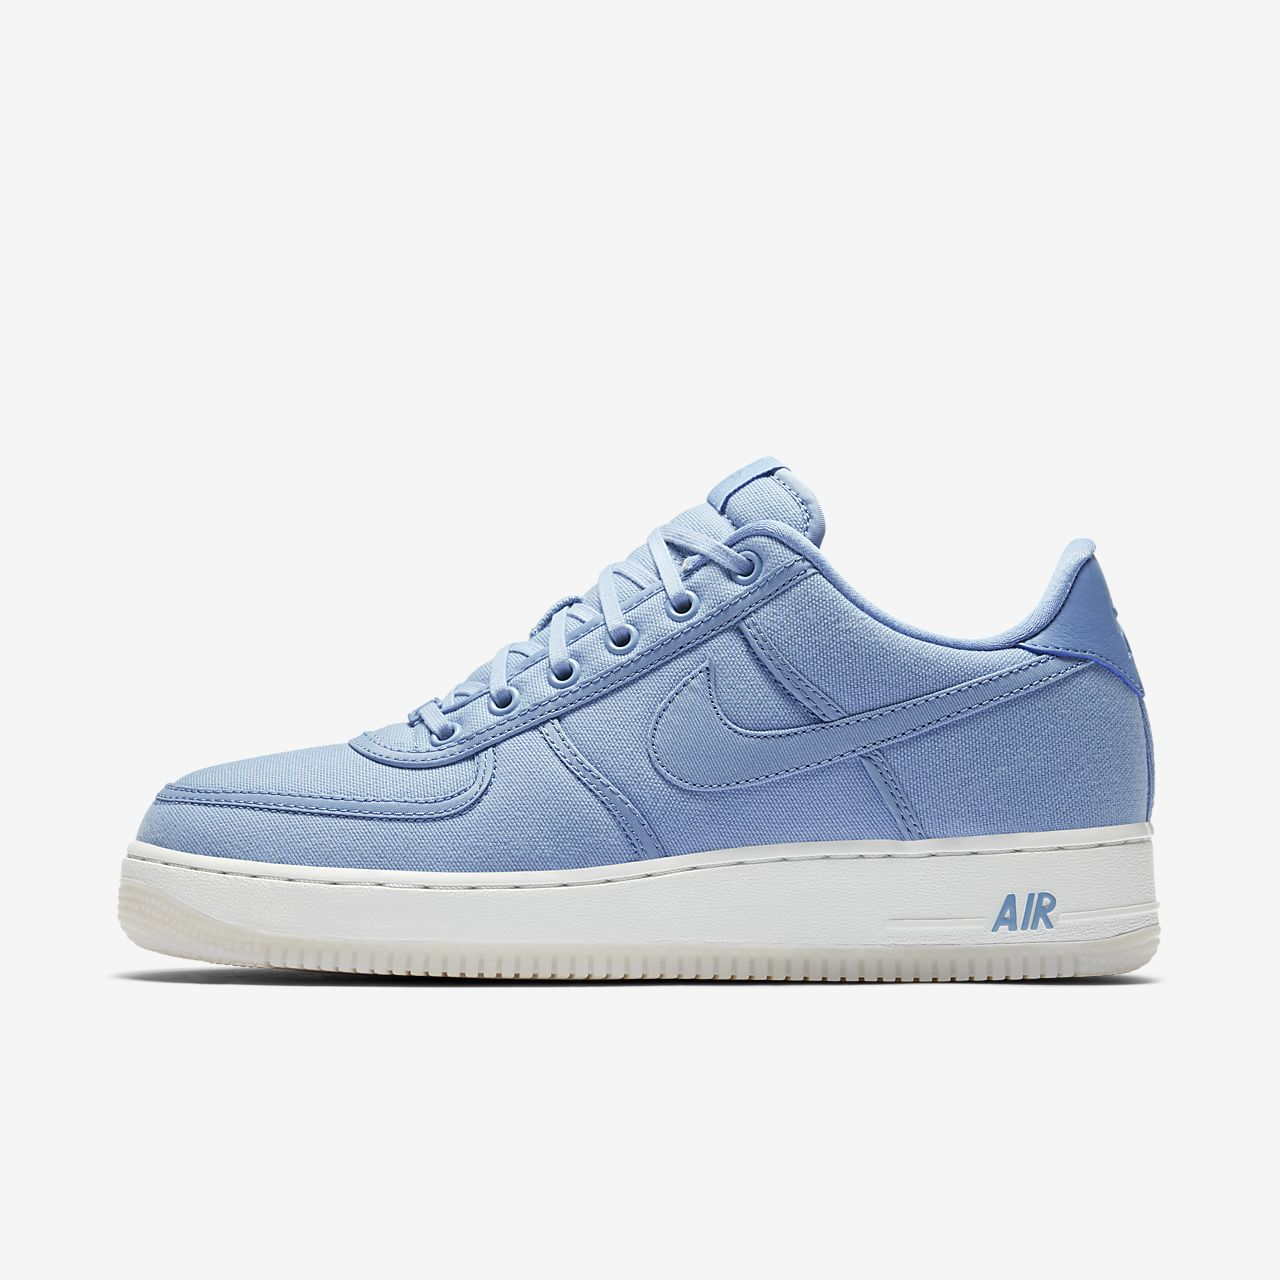 Nike Air Force 1 Low Retro QS Men's Shoe